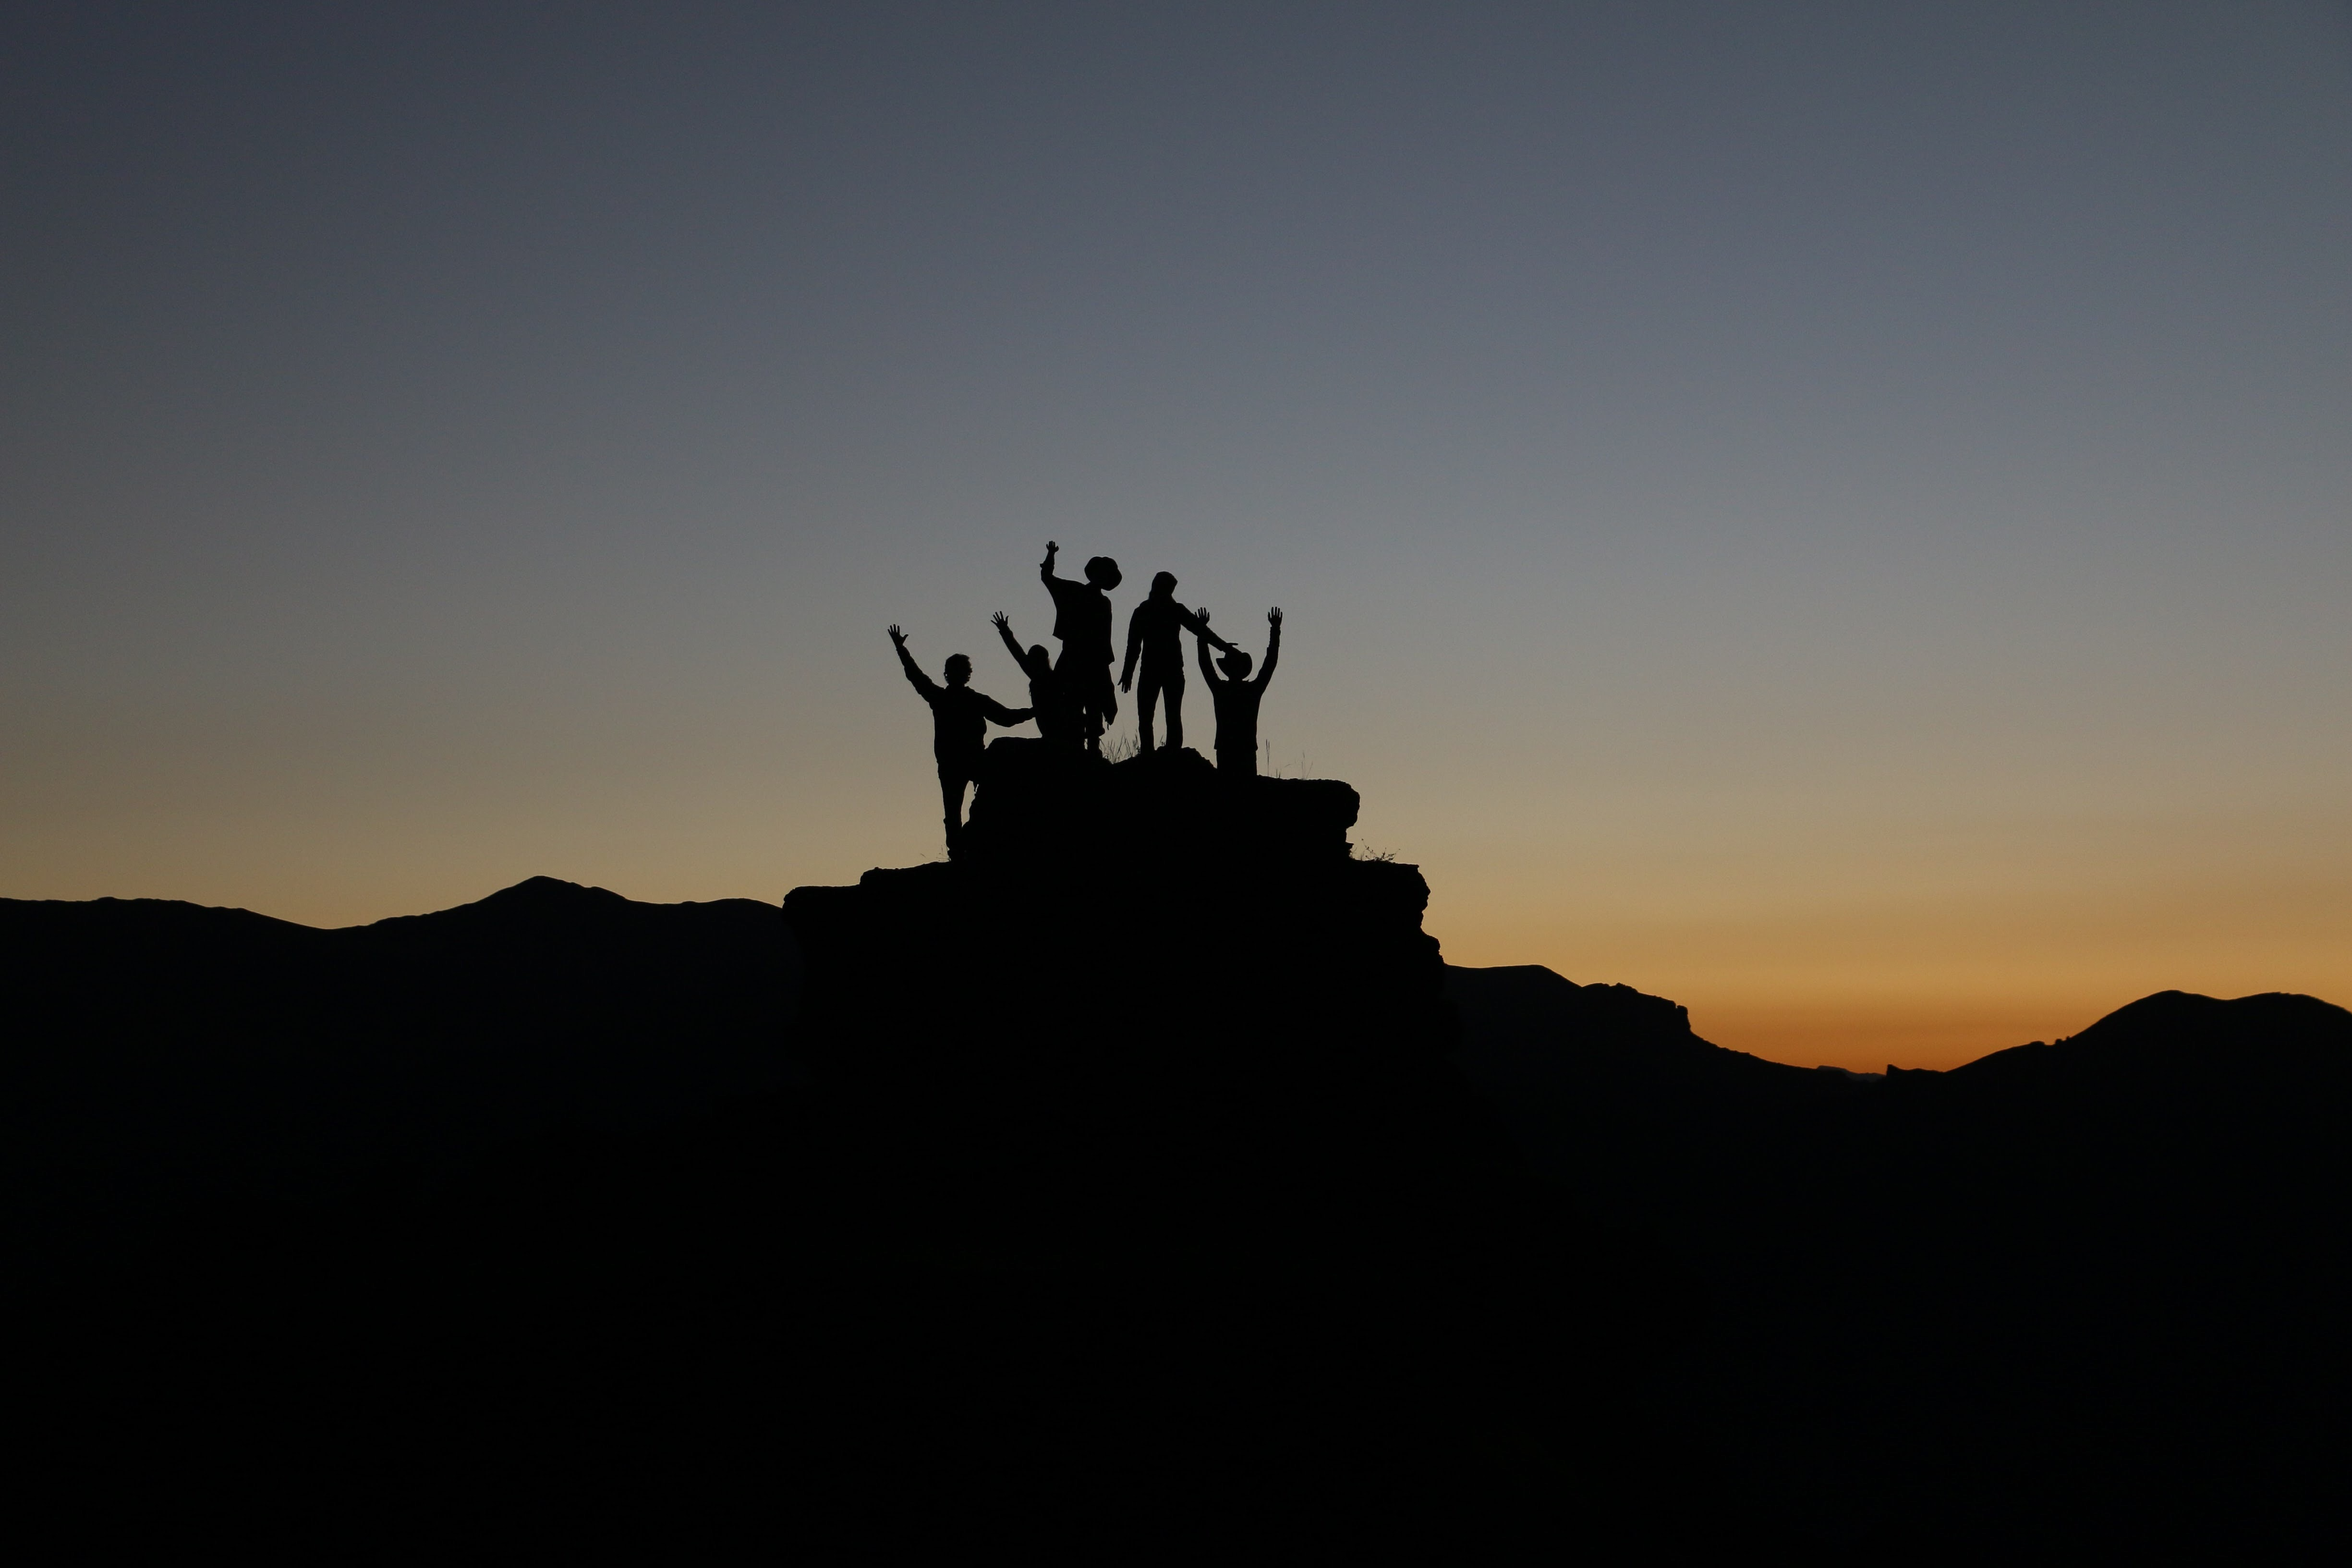 a team celebrating on top of a mountain